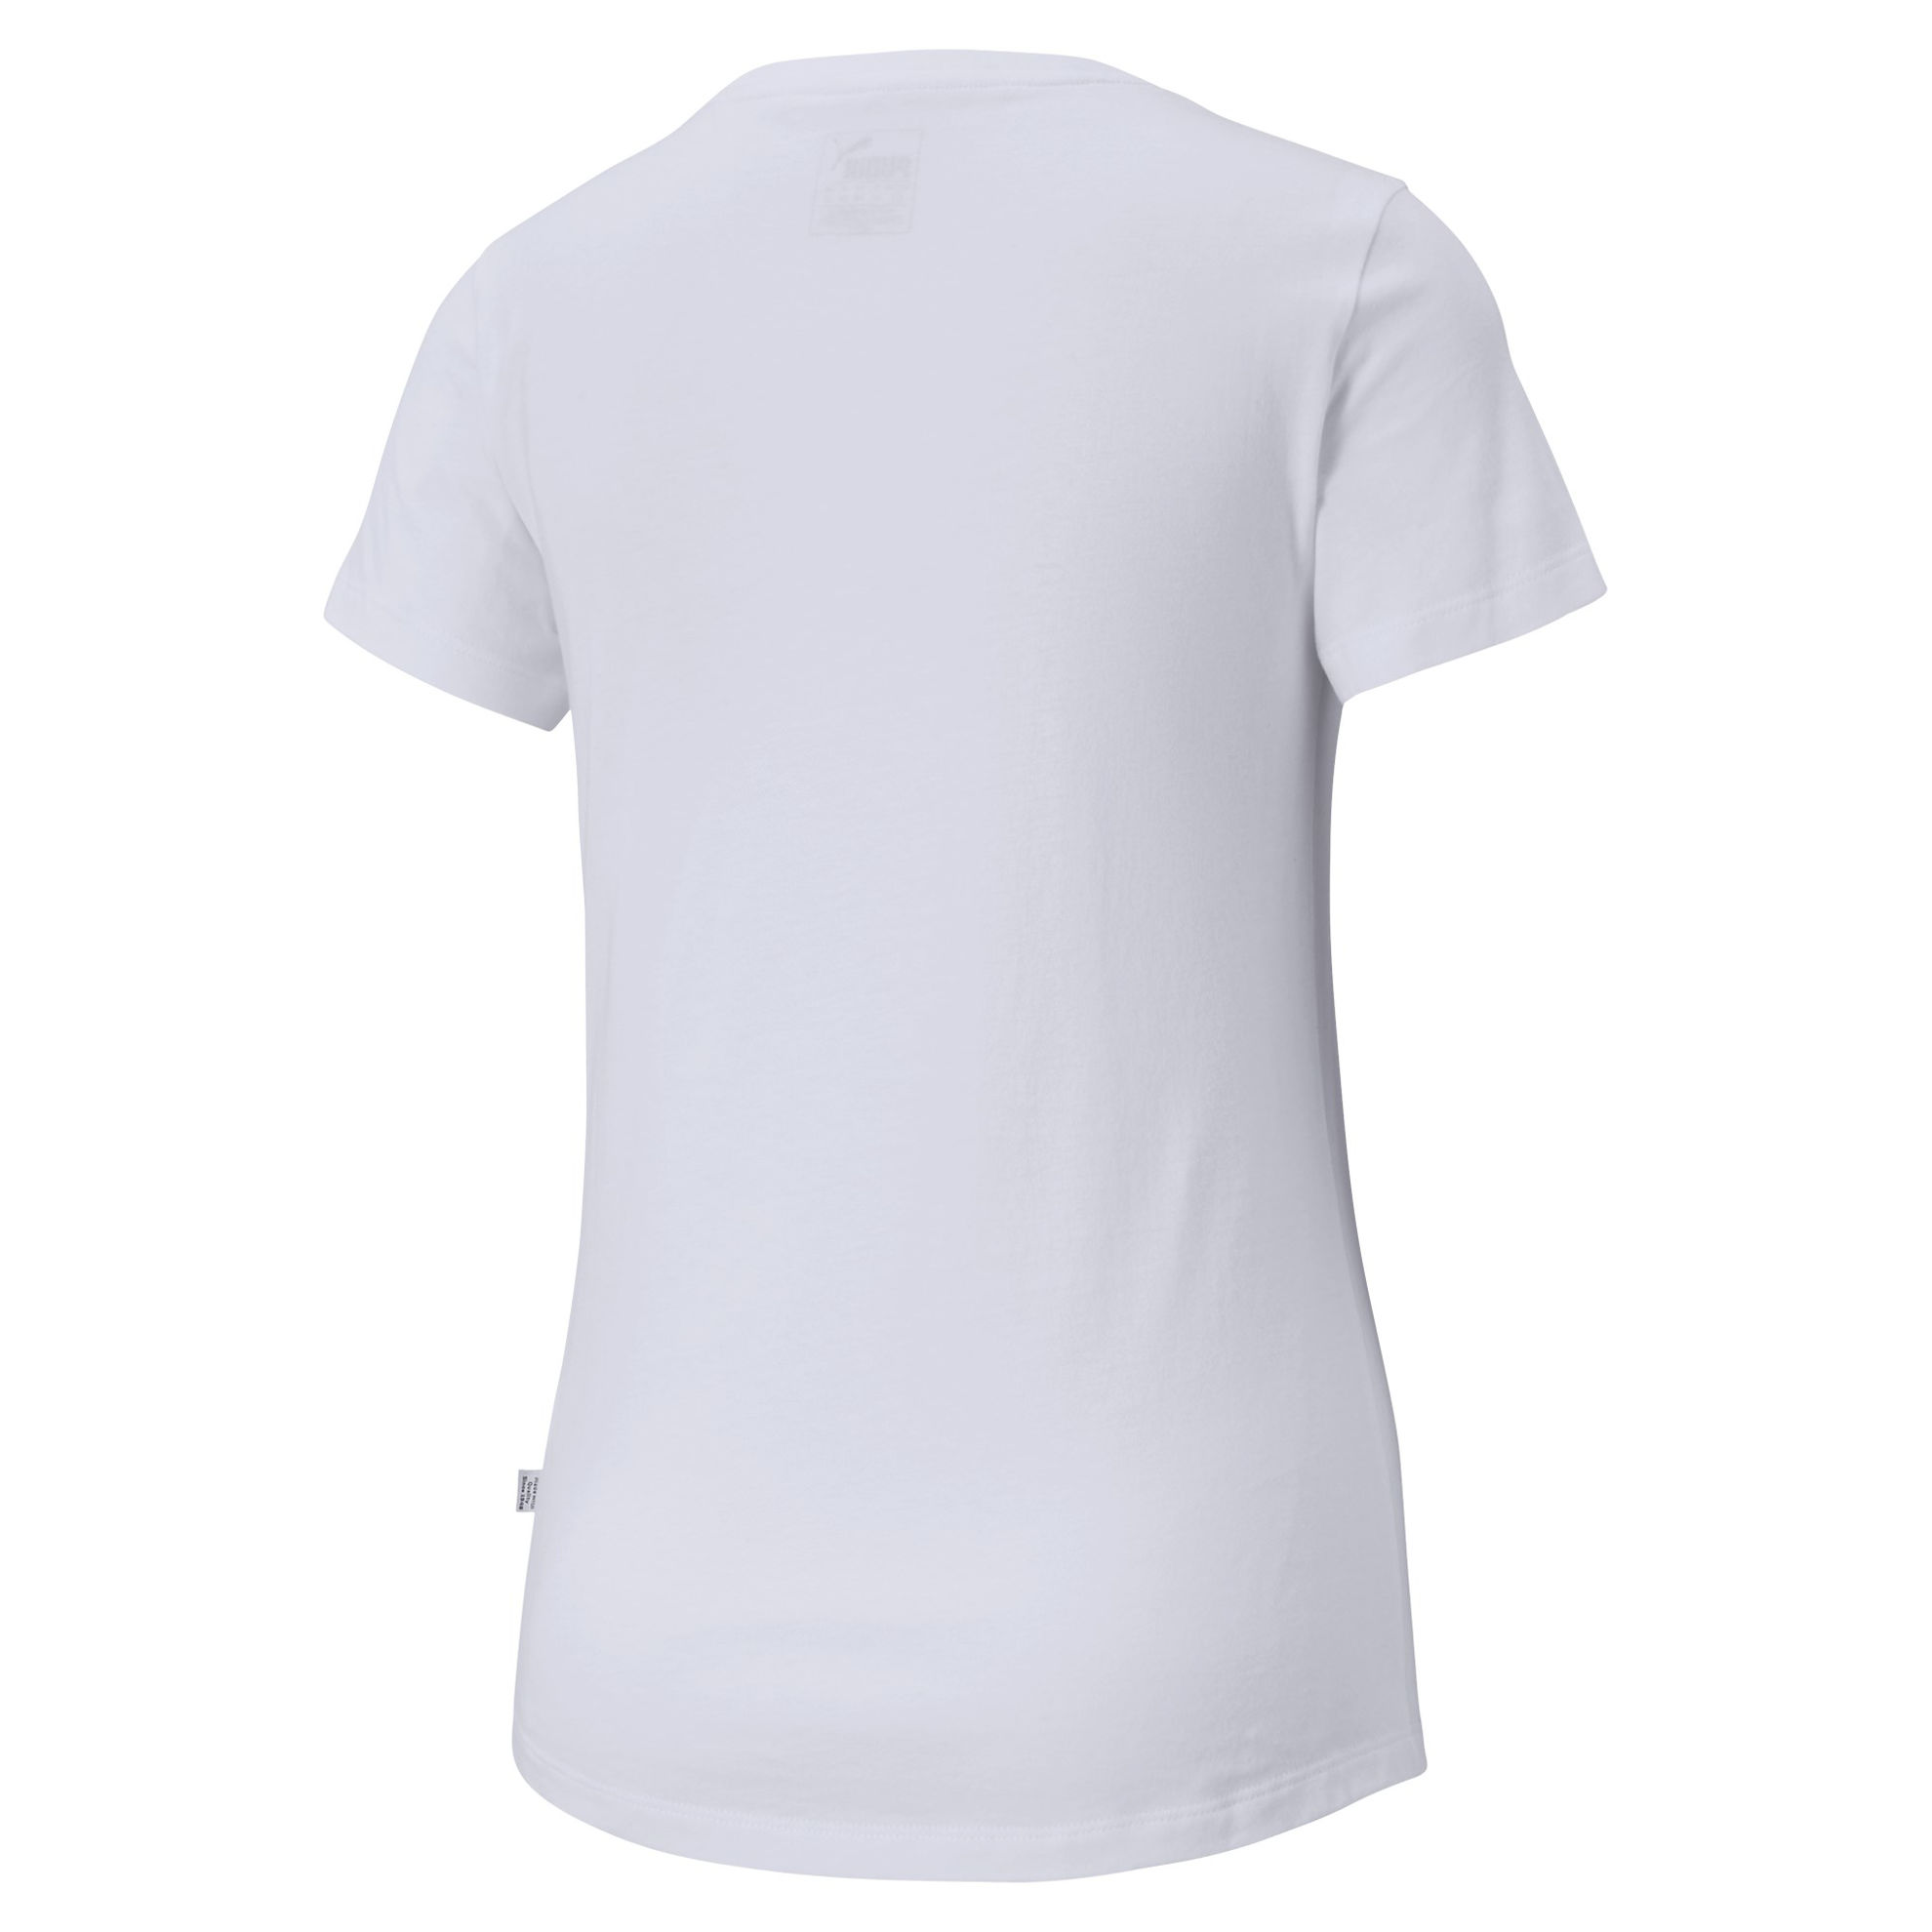 Immagine di PUMA - T-SHIRT MM AMPLIFIED GRAPHIC TEE WHITE